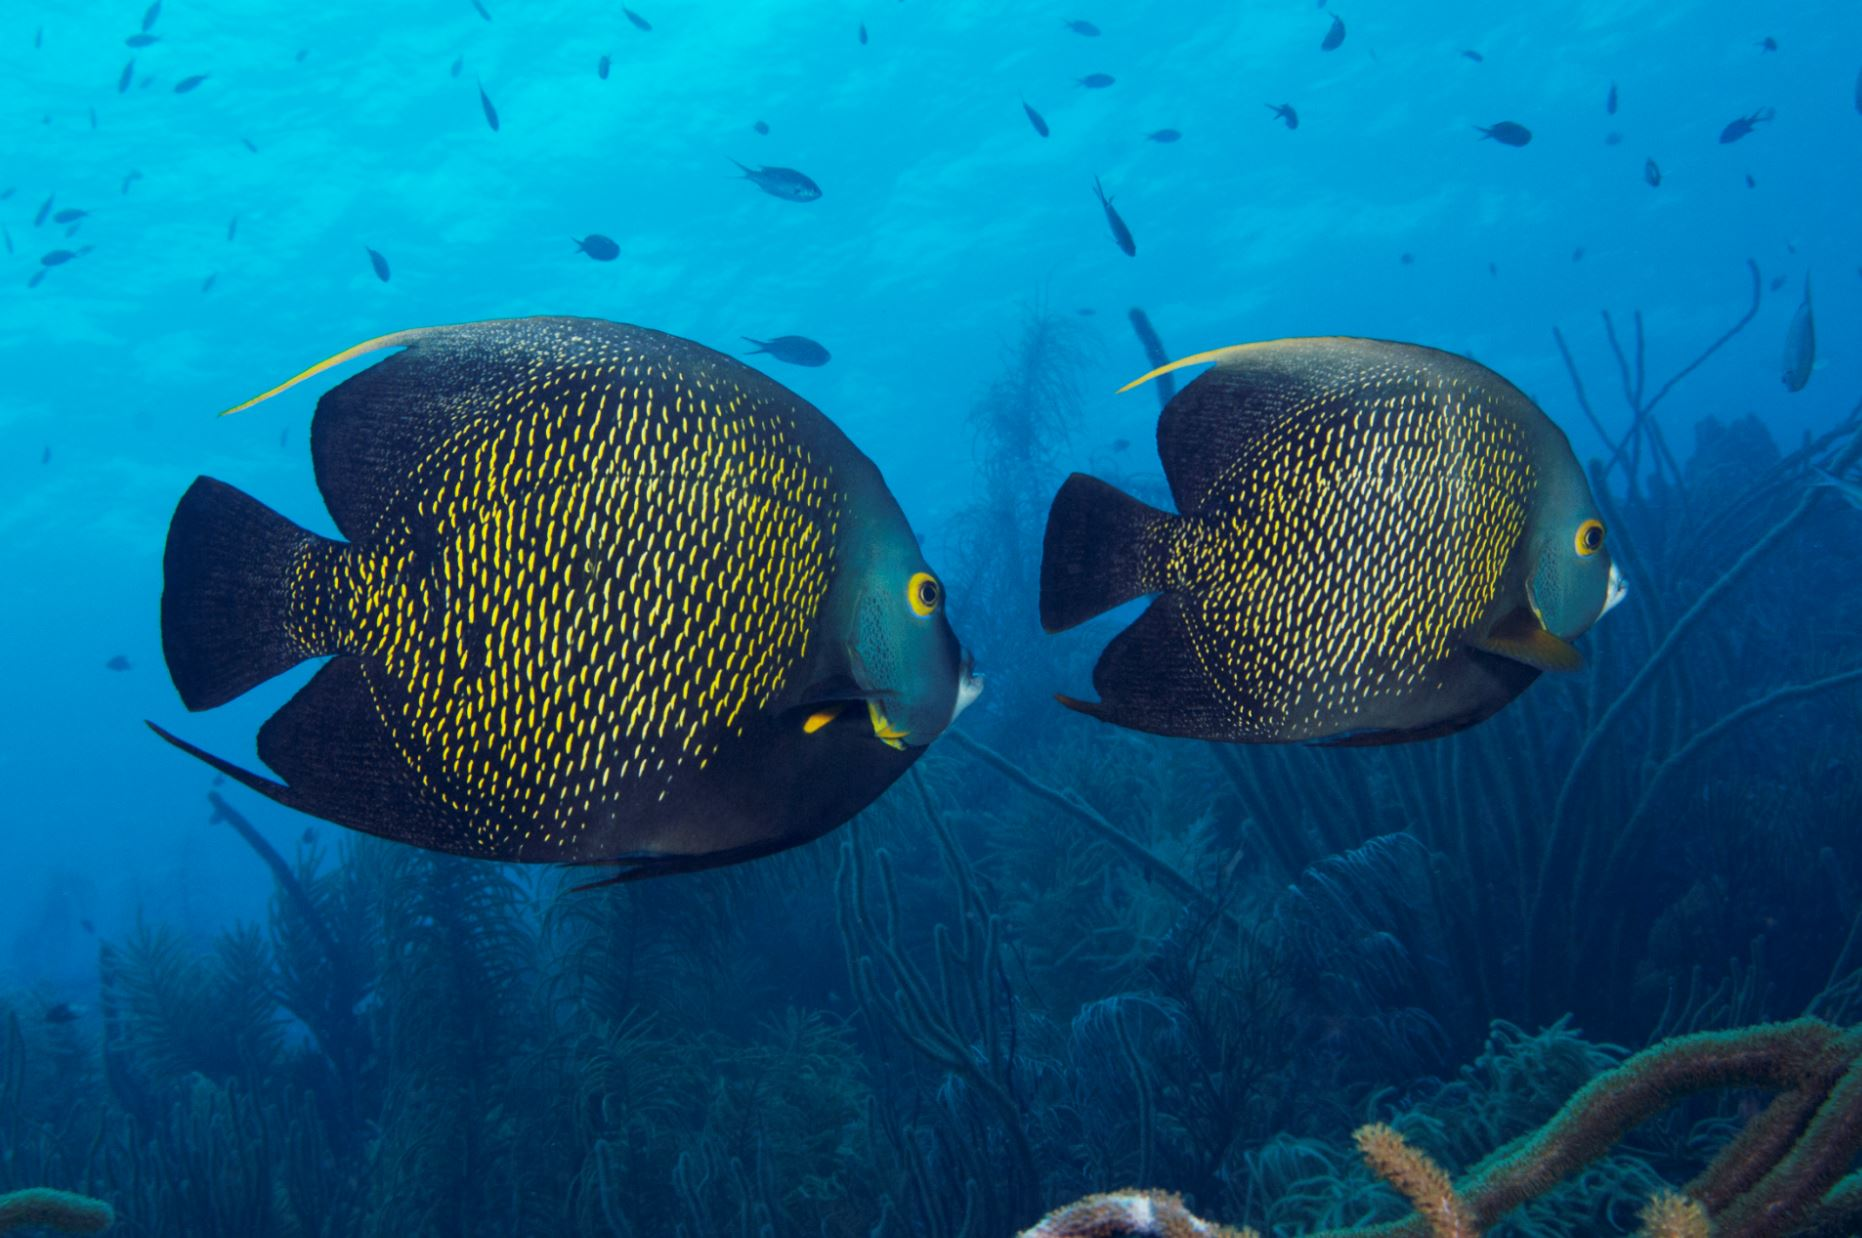 french angelfish CREDIT: THE OCEAN AGENCY / coral reef image bank